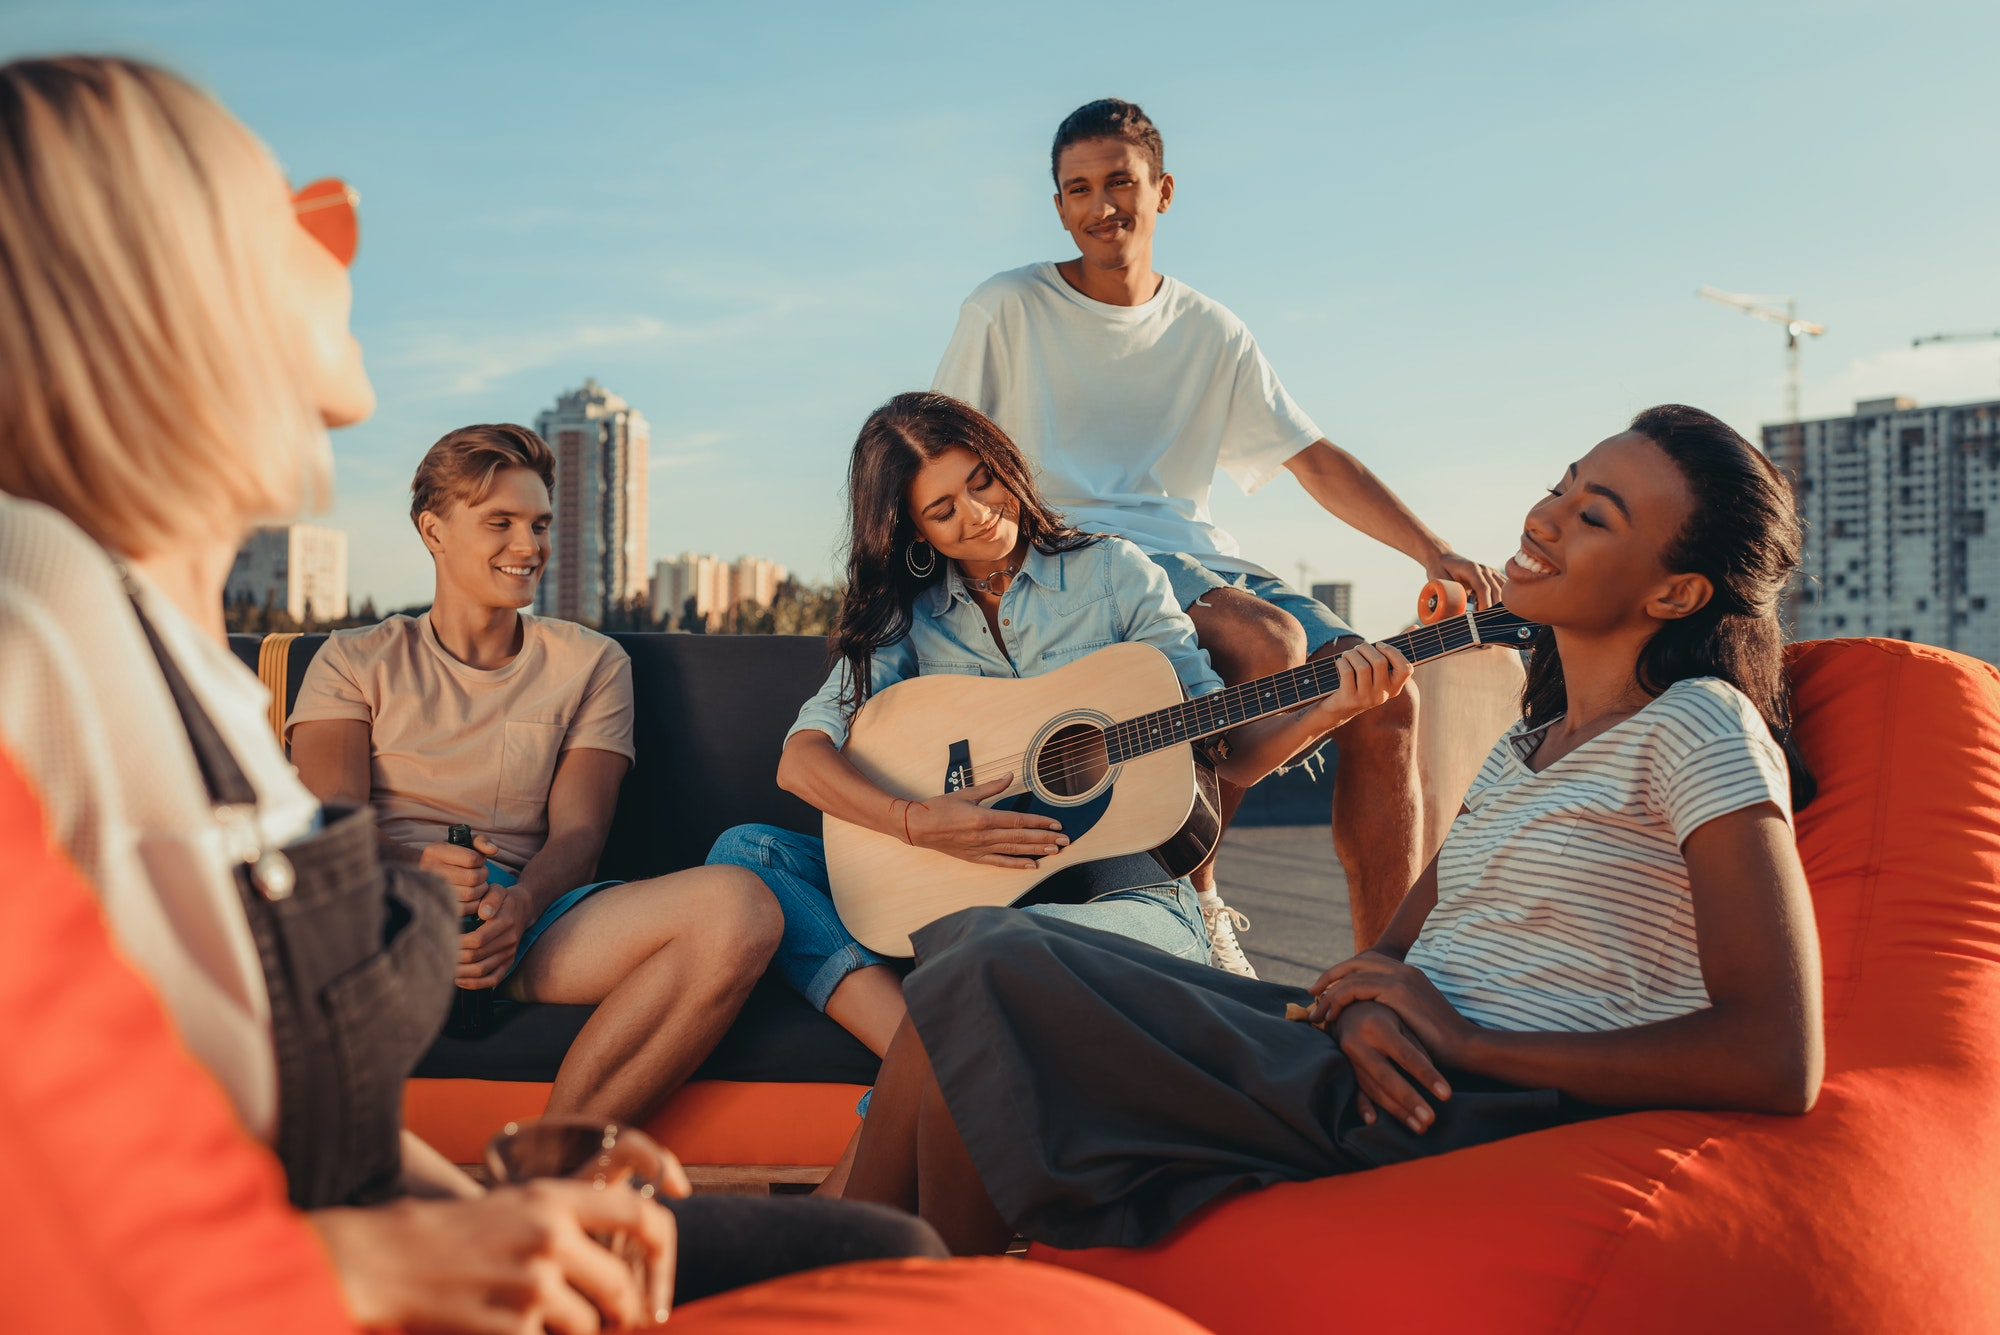 young girl playing guitar for group of happy friends